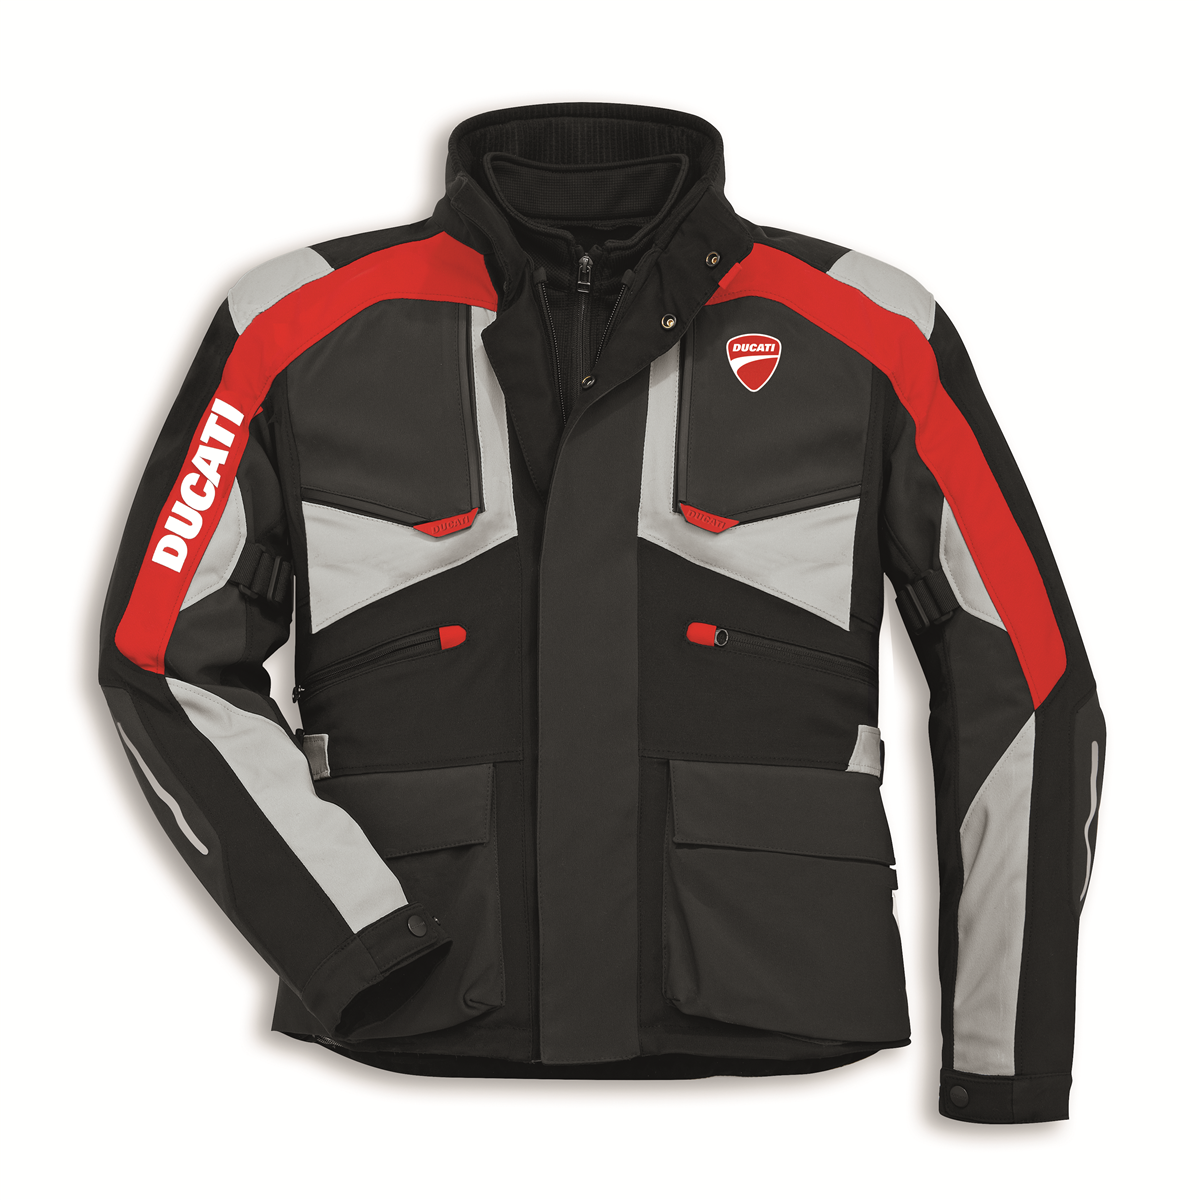 blouson gore tex dainese ducati strada c3 s team motos. Black Bedroom Furniture Sets. Home Design Ideas